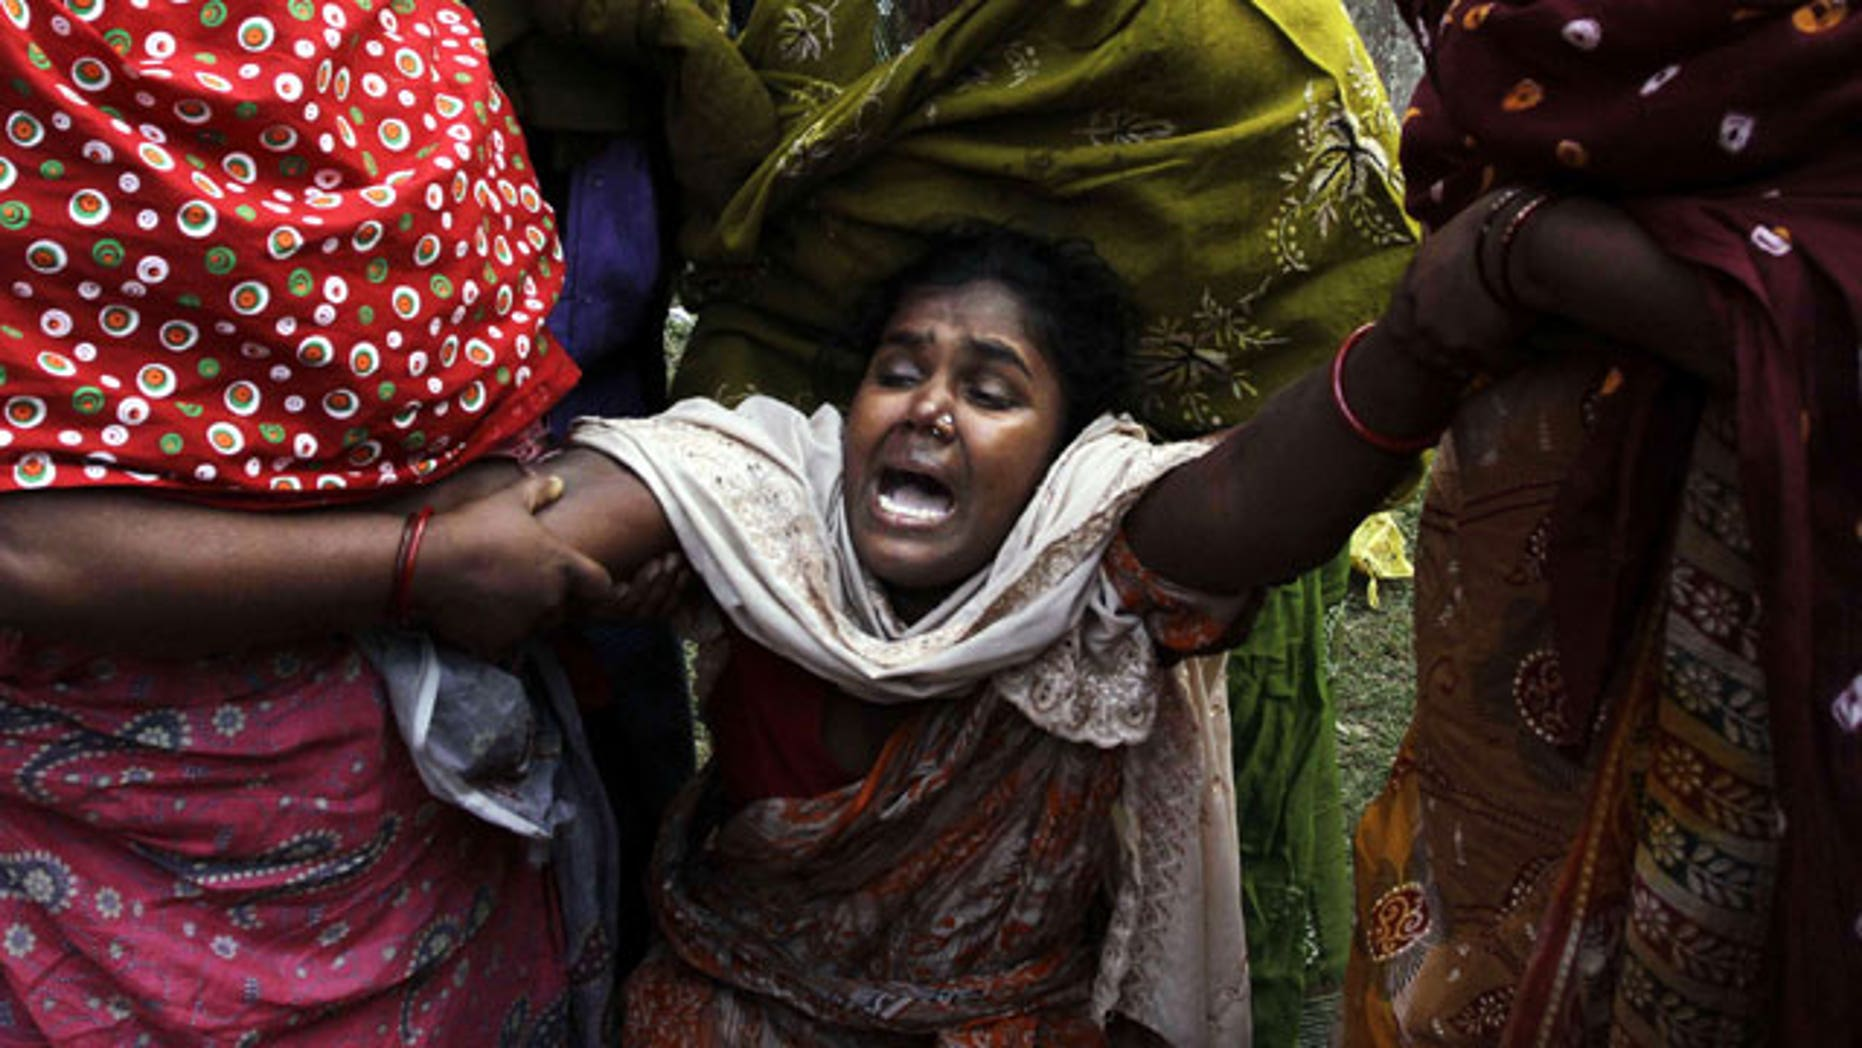 December 15, 2011: An Indian woman cries after her relative died from toxic alcohol outside a hospital in Diamond Harbour, near Kolkata, India.